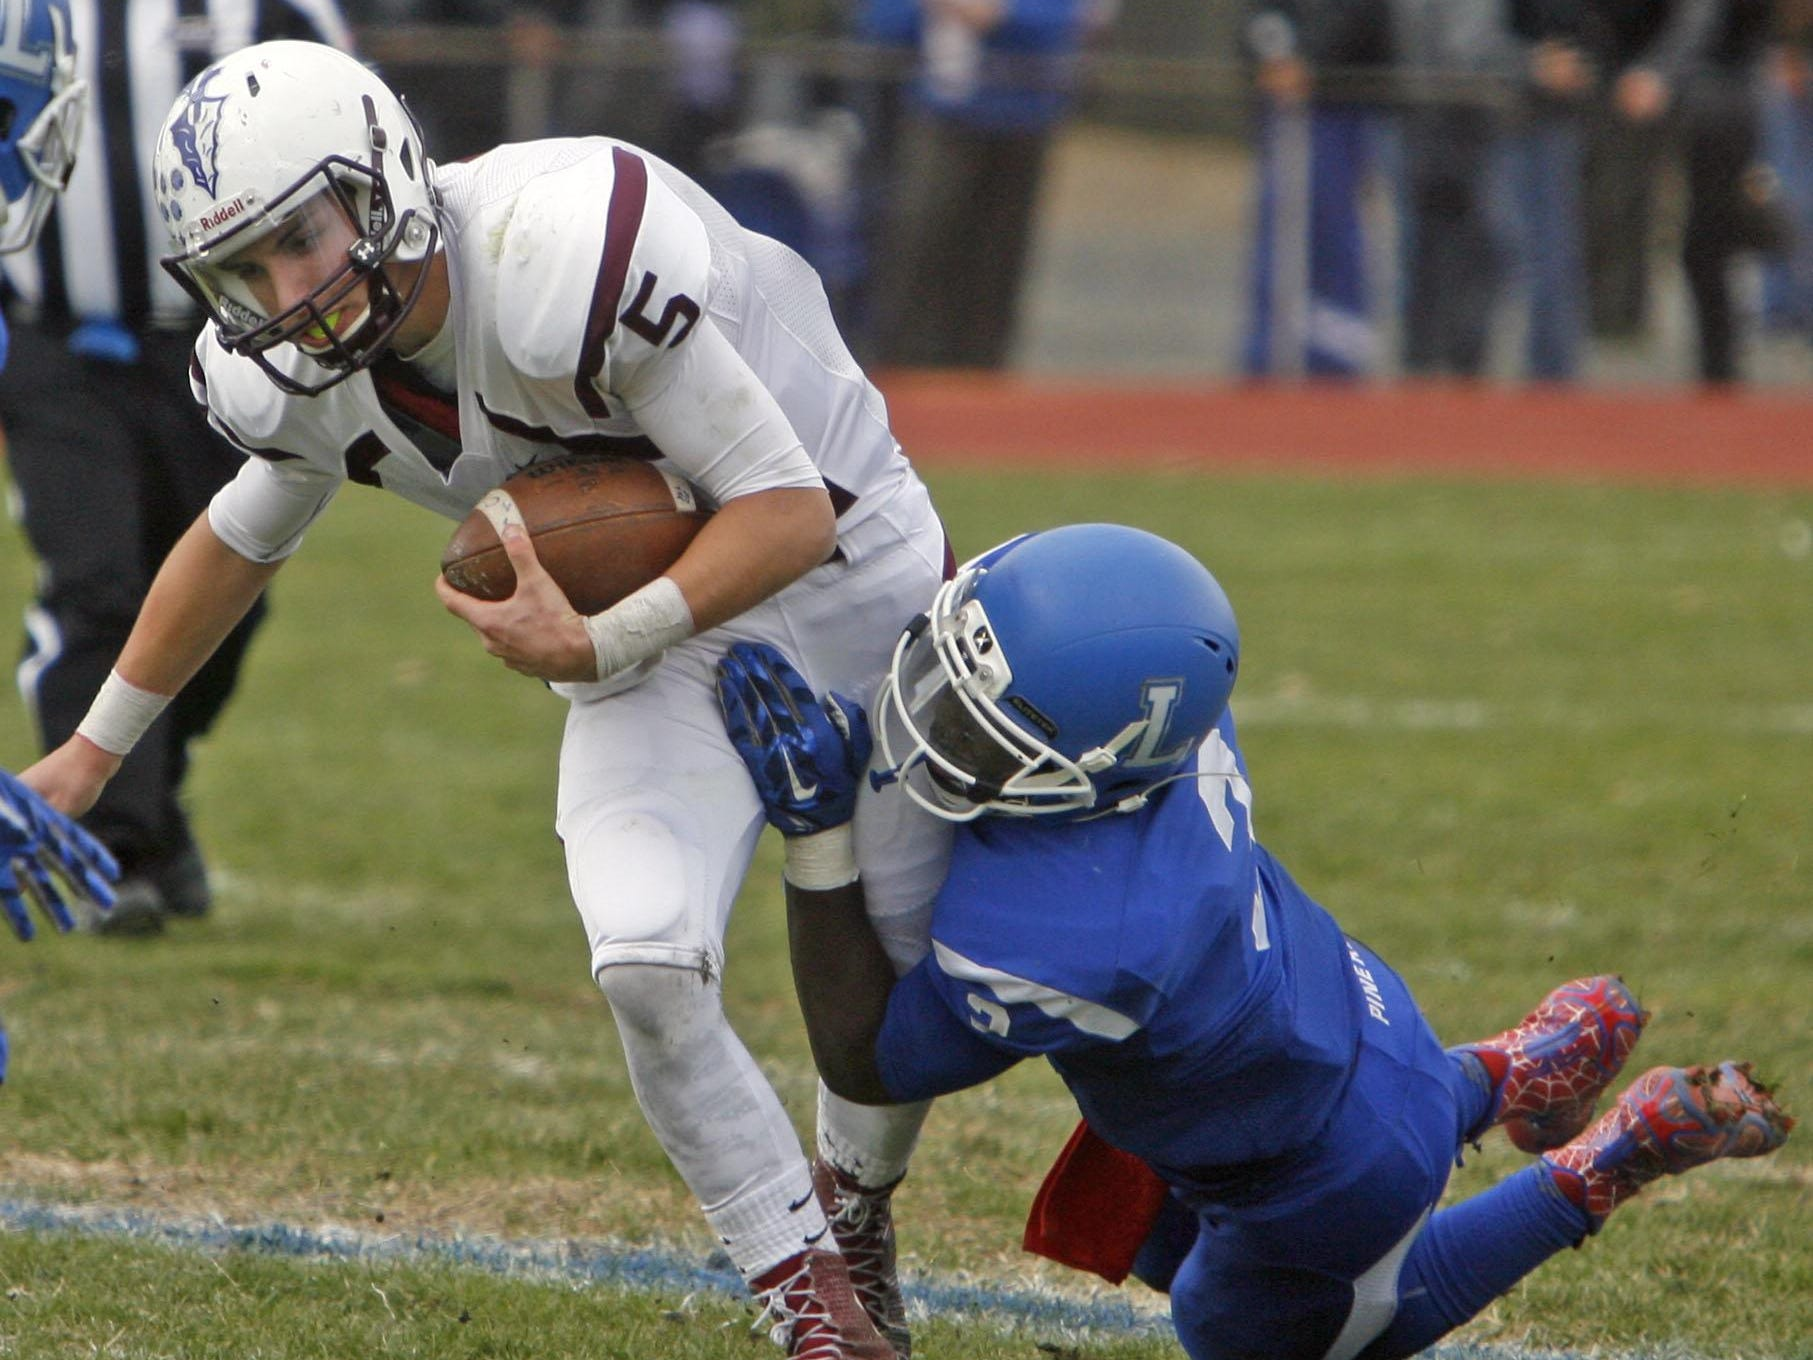 Toms River South quarterback TJ Scuderi is sacked by Lakewood's Jaqel Hunter at Lakewood High School Nov. 26, 2015. Photo by Vincent DiSalvio / Special to The ASBURY PARK PRESS